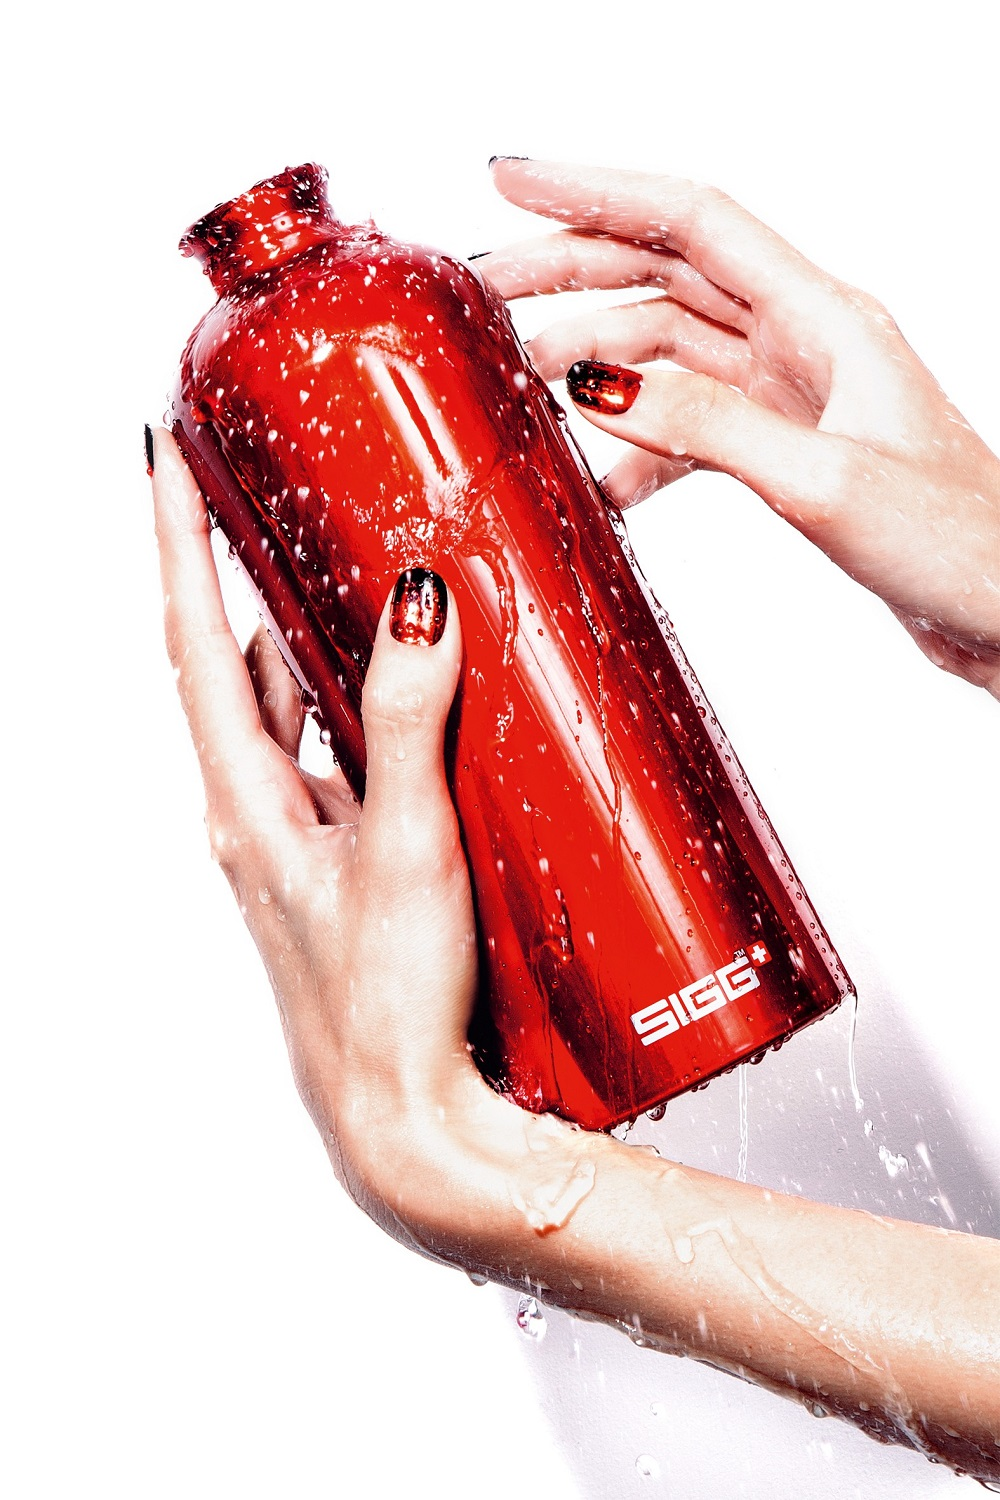 SIGG_lifestyle_red_bottle_with_hands_klein